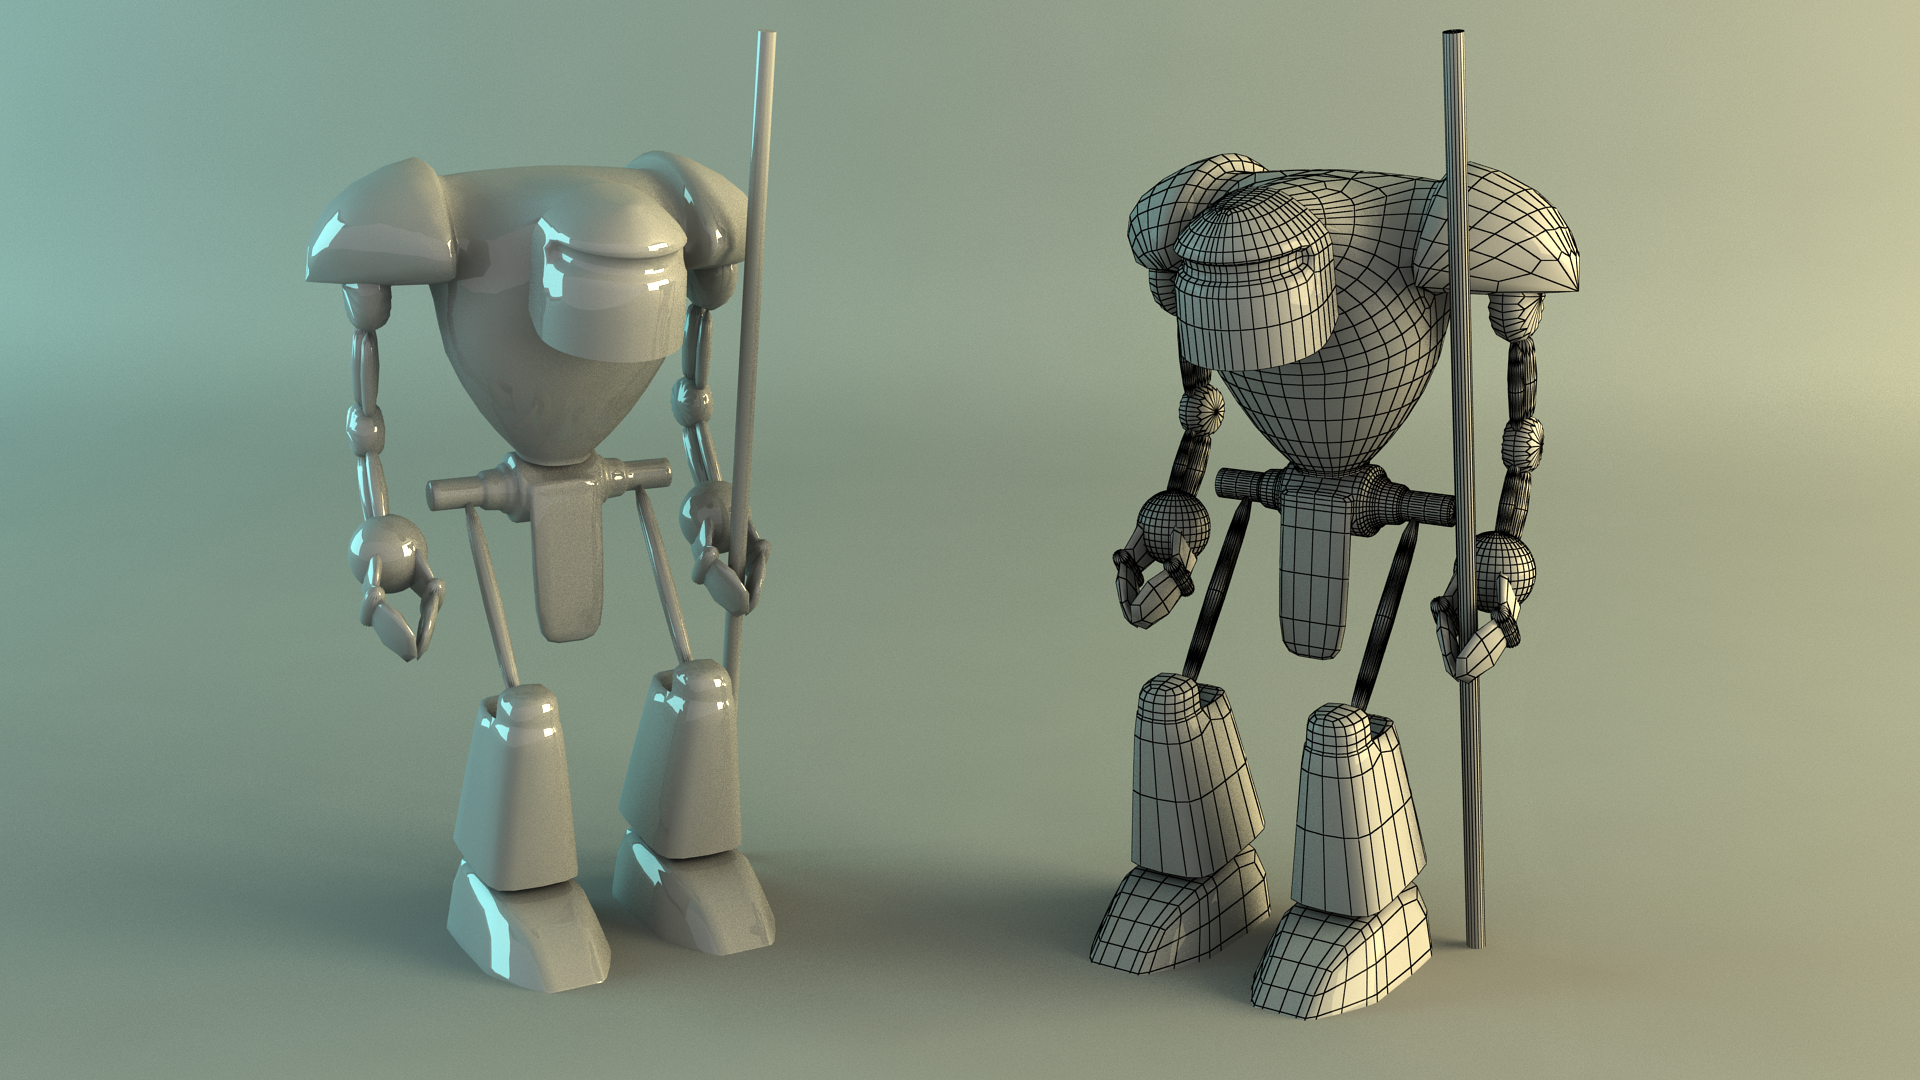 robot 3d model by stake0113 on deviantart On a 3d model